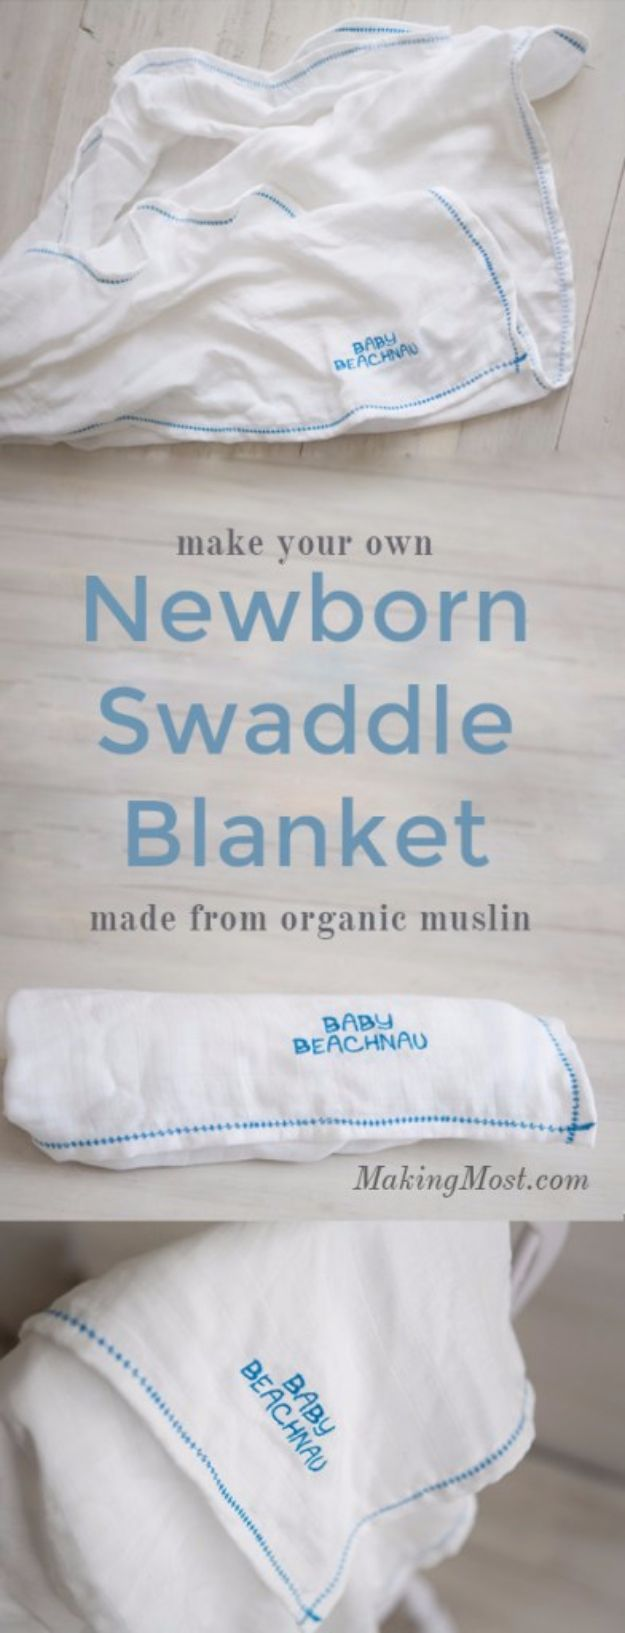 DIY Ideas for Newborn - Newborn Swaddle Blanket - Do It Yourself Projects for the New Baby Boy or Girl - Nursery and Room Decor, Gear and Products, Safety Ideas and Other Practical Items Make Great DIY Baby Gifts